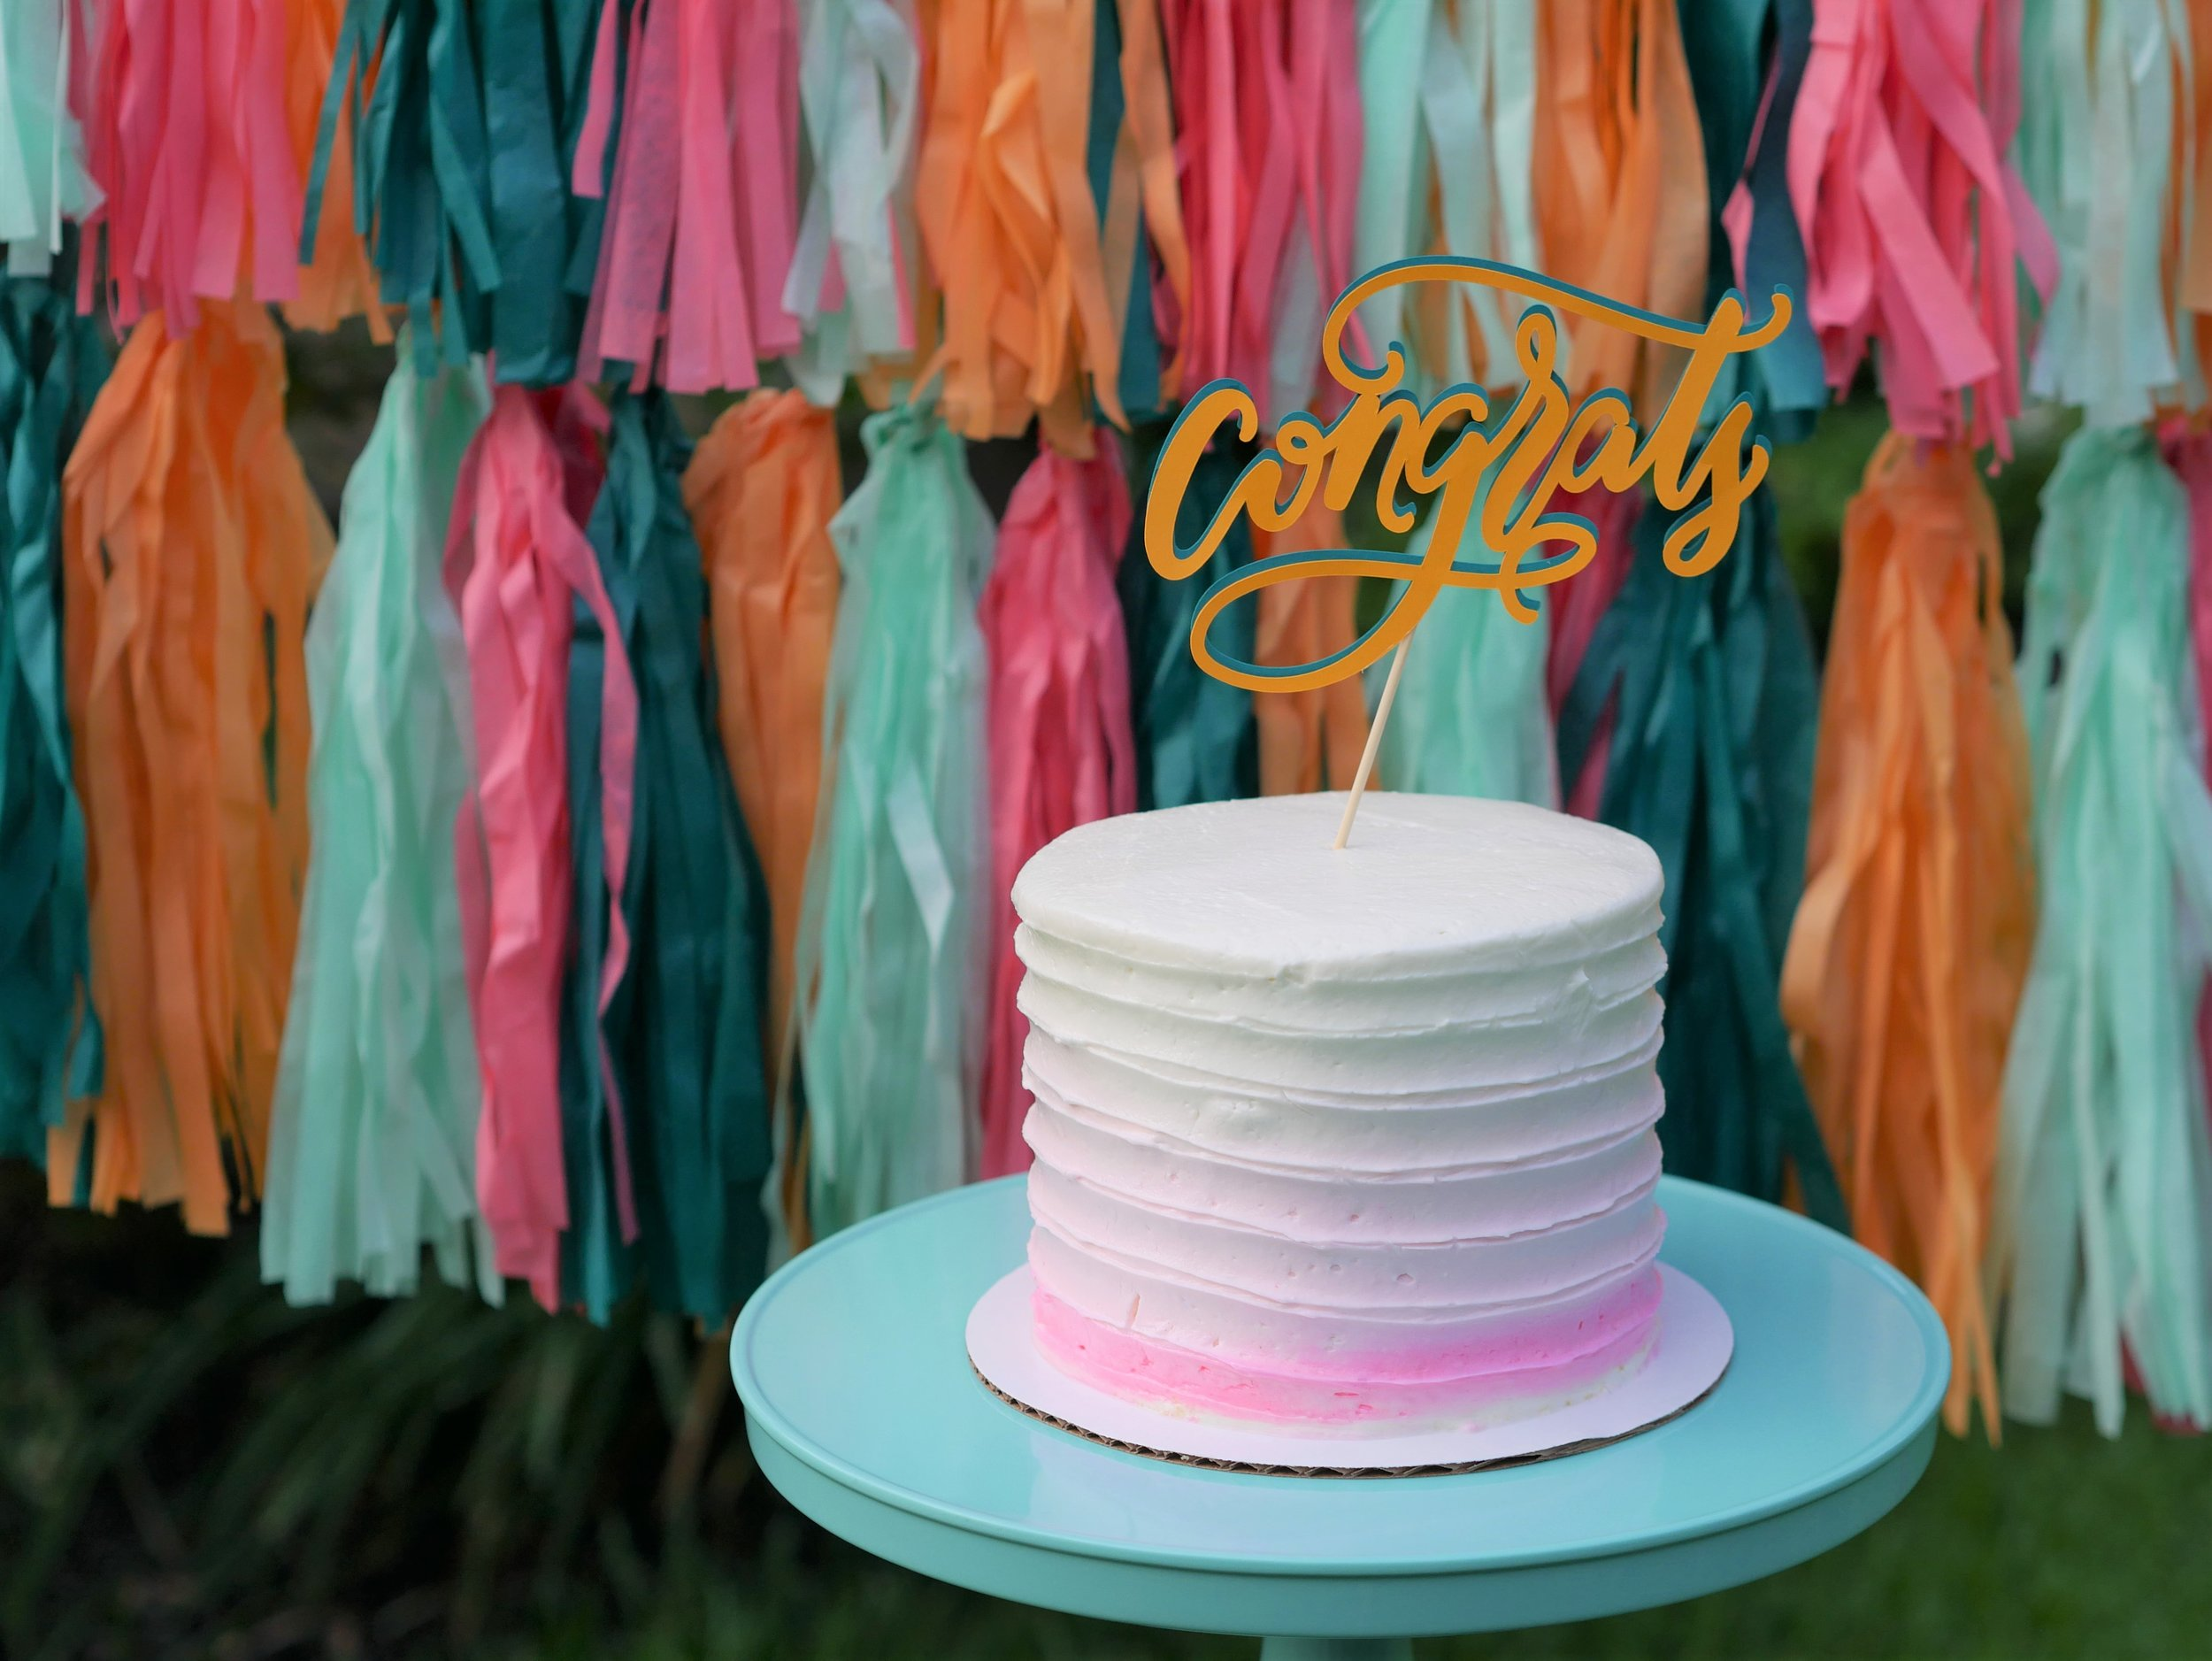 Tres Leches cake and a fun graduation fiesta in turquoise, coral, pinks and oranges. See more from this Modern Grad Party on Mint Event Design www.minteventdesign.com #graduationparty #graduationpartyideas #graduation #gradparty #gradpartyideas